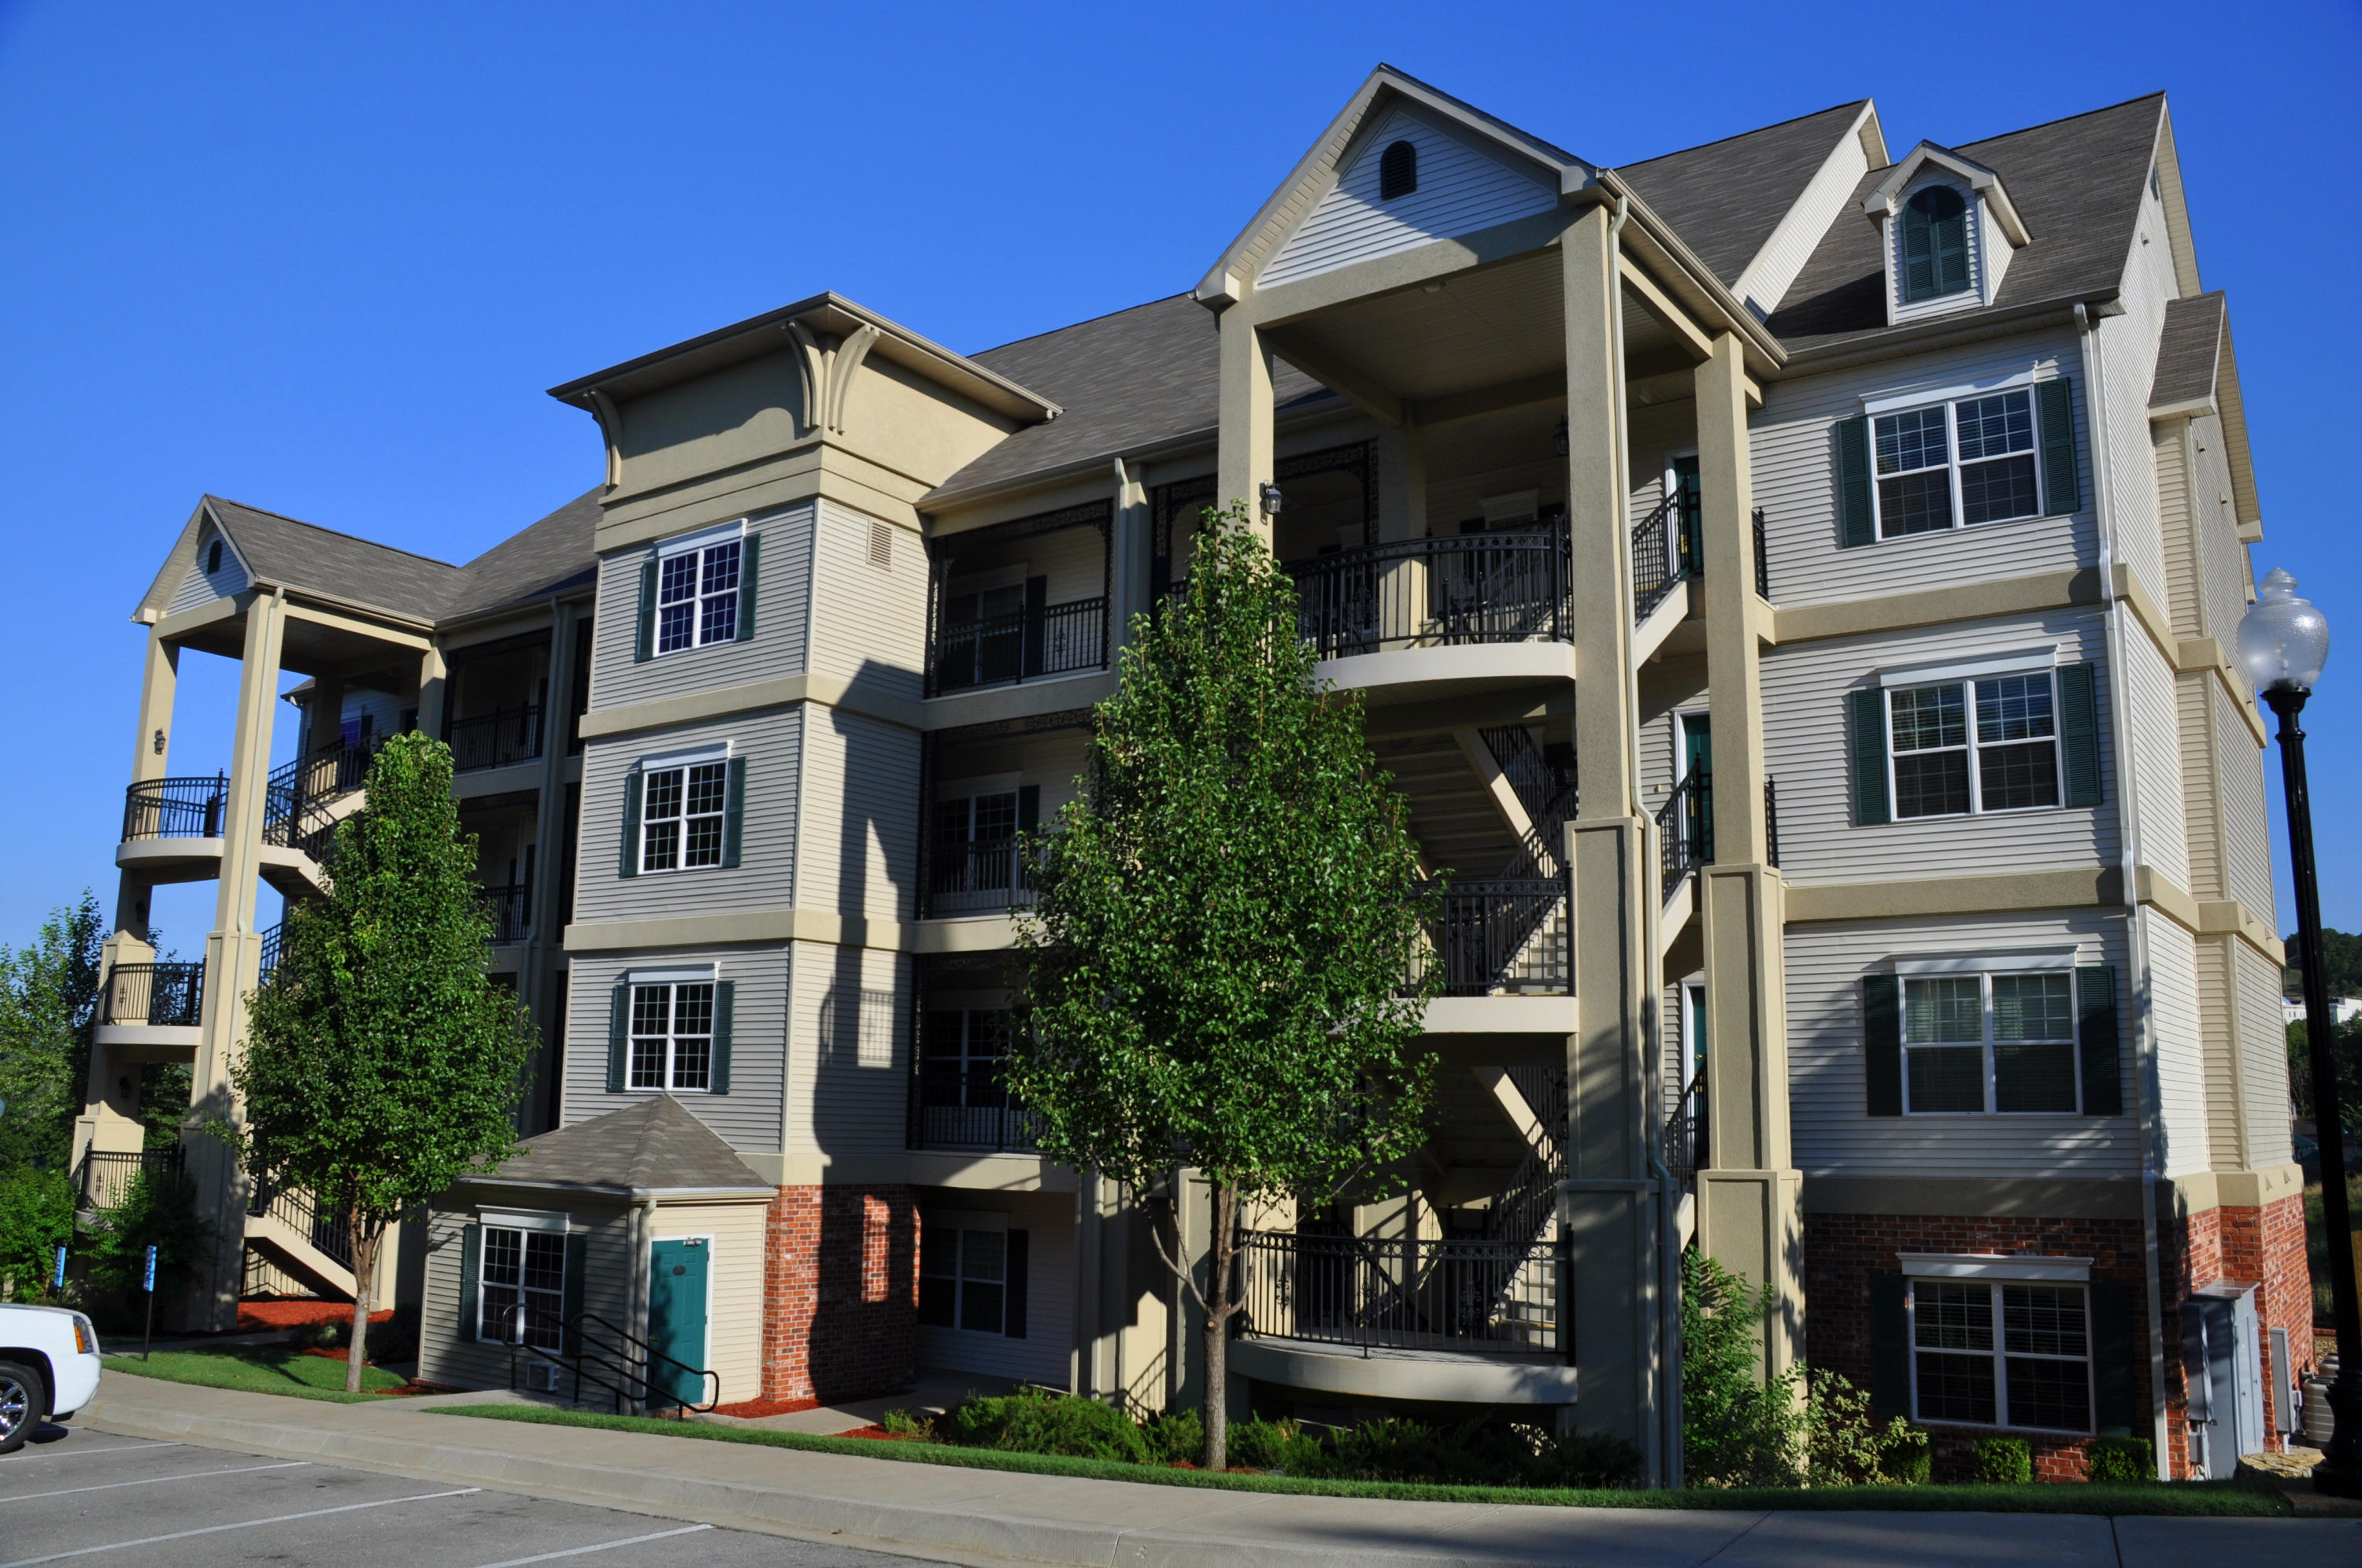 3830 Green Mountain Dr #1301 Branson, MO 65616